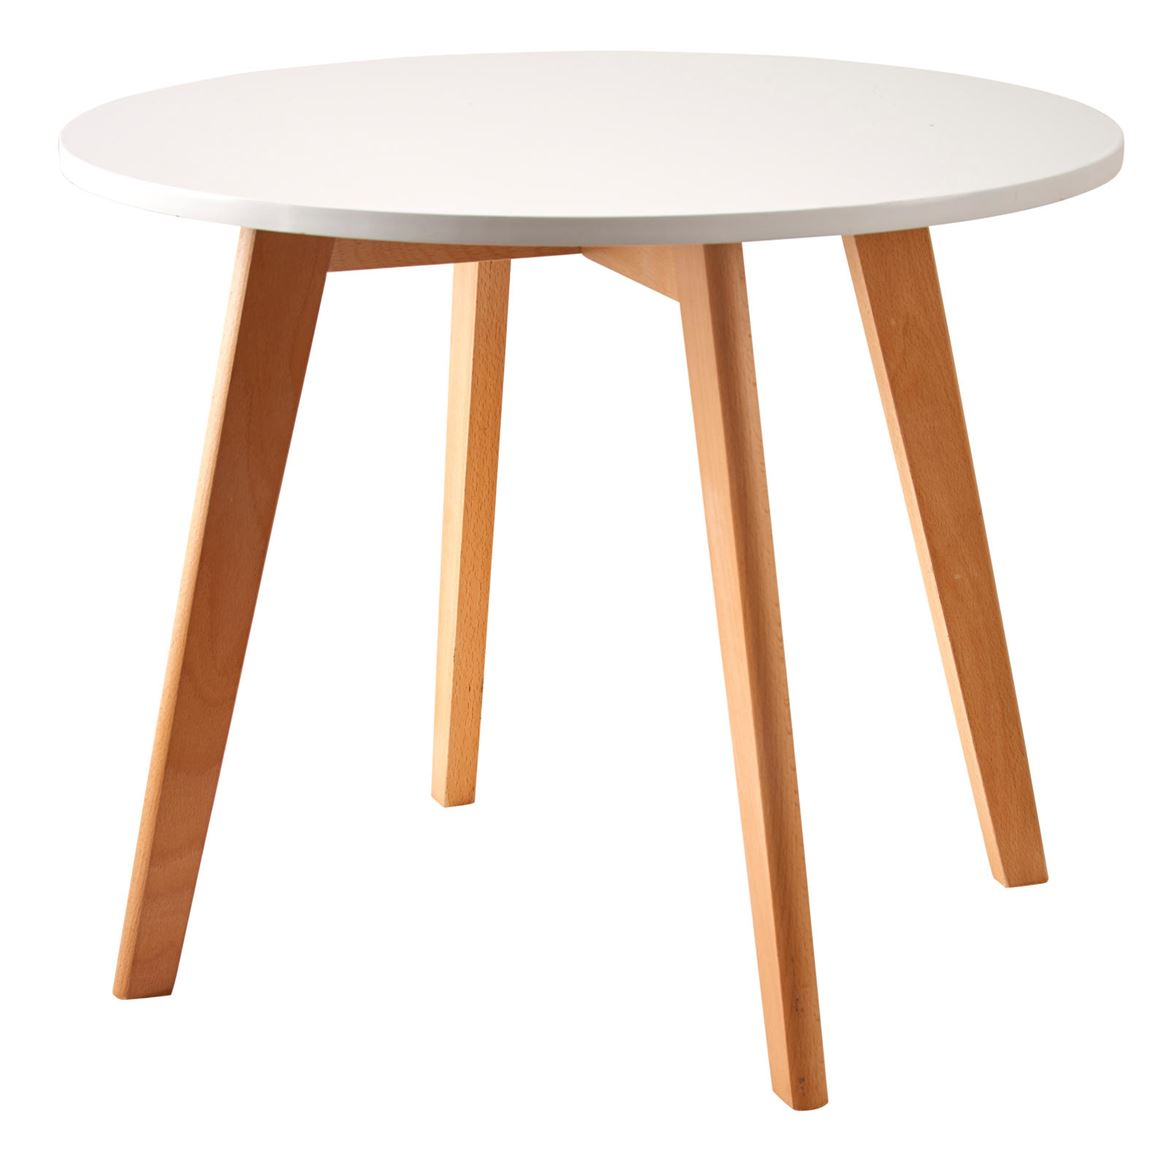 MATHIAS Kindertafel wit H 49 cm; Ø 60 cm_mathias-kindertafel-wit-h-49-cm;-ø-60-cm